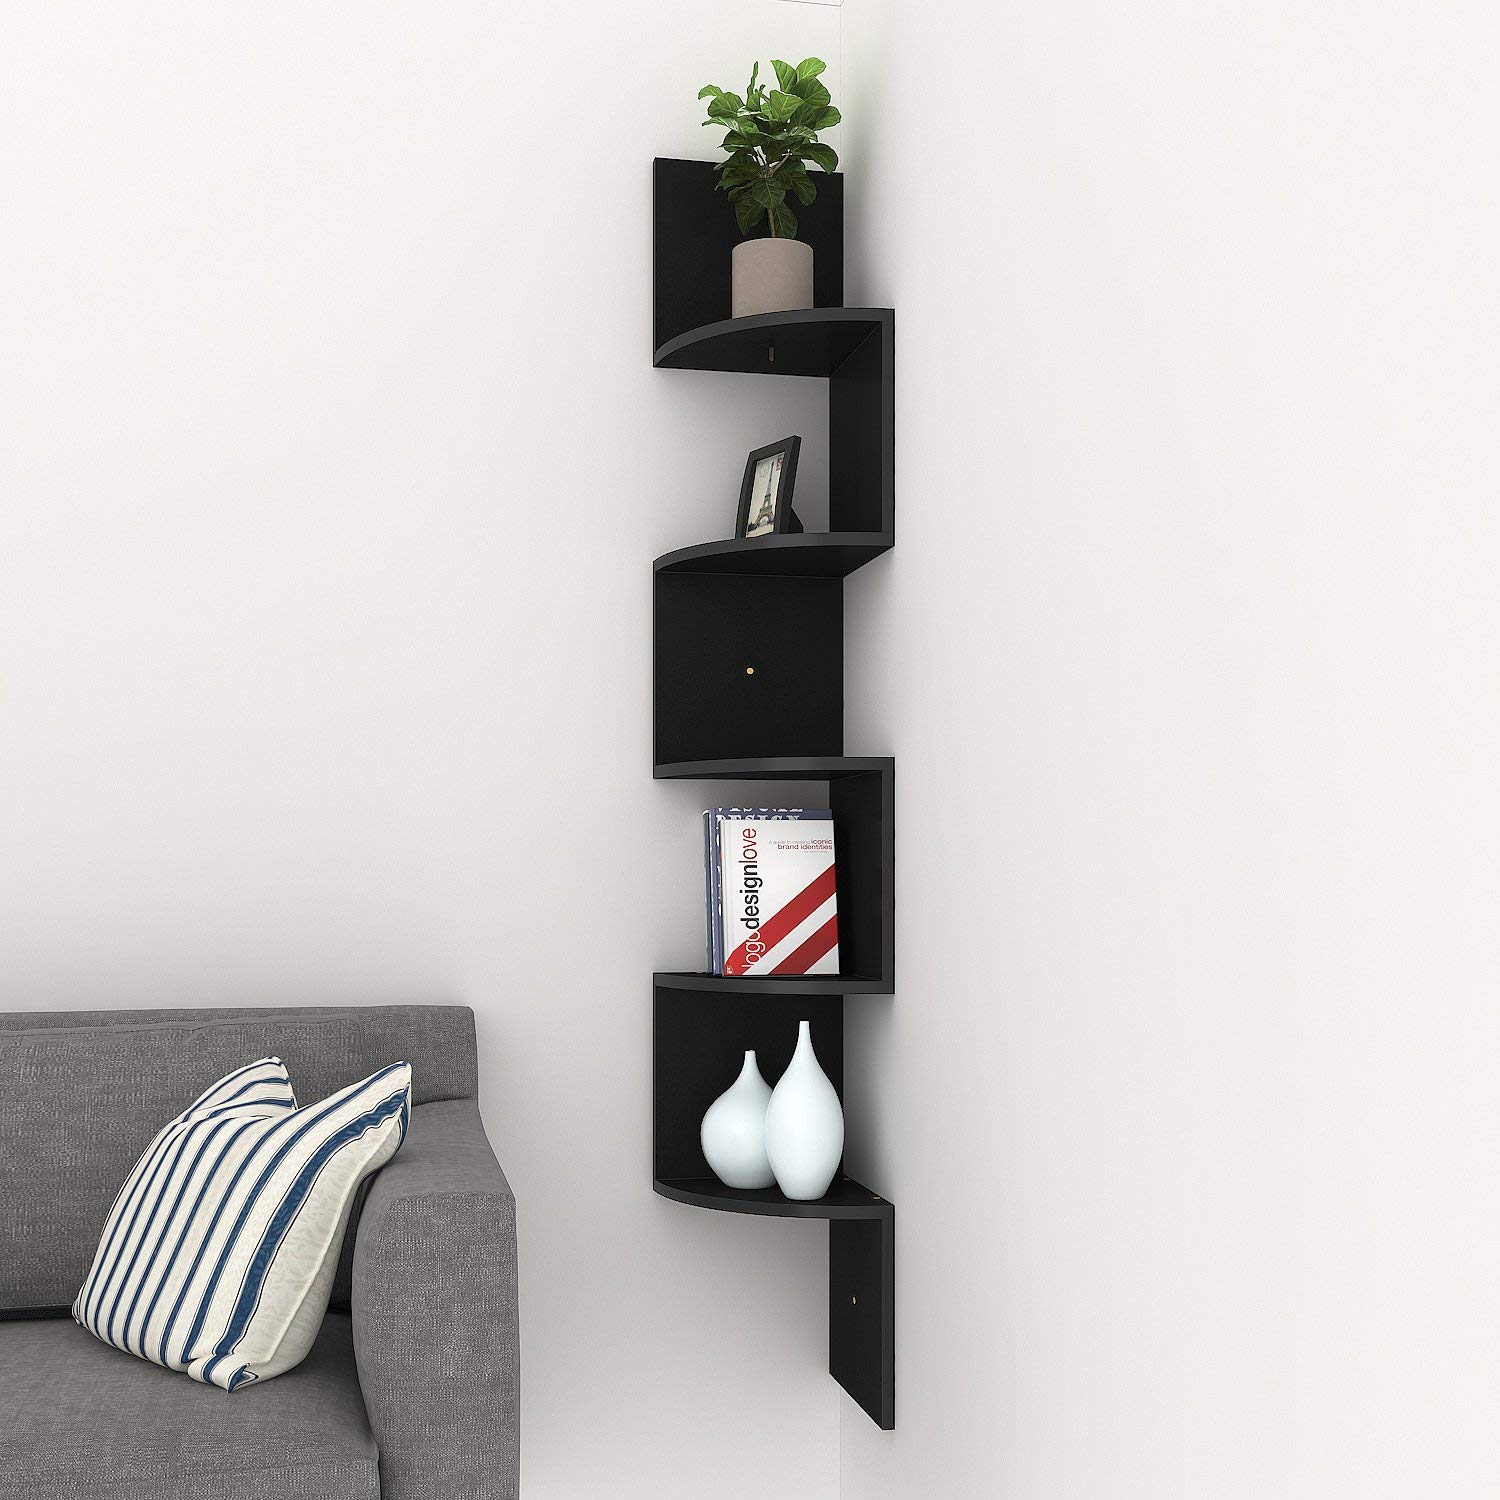 homdox corner shelf tier shelves zig zag wall floating office design mount for living room bedroom bathroom open kitchen holders echogear finder showpiece affordable closet